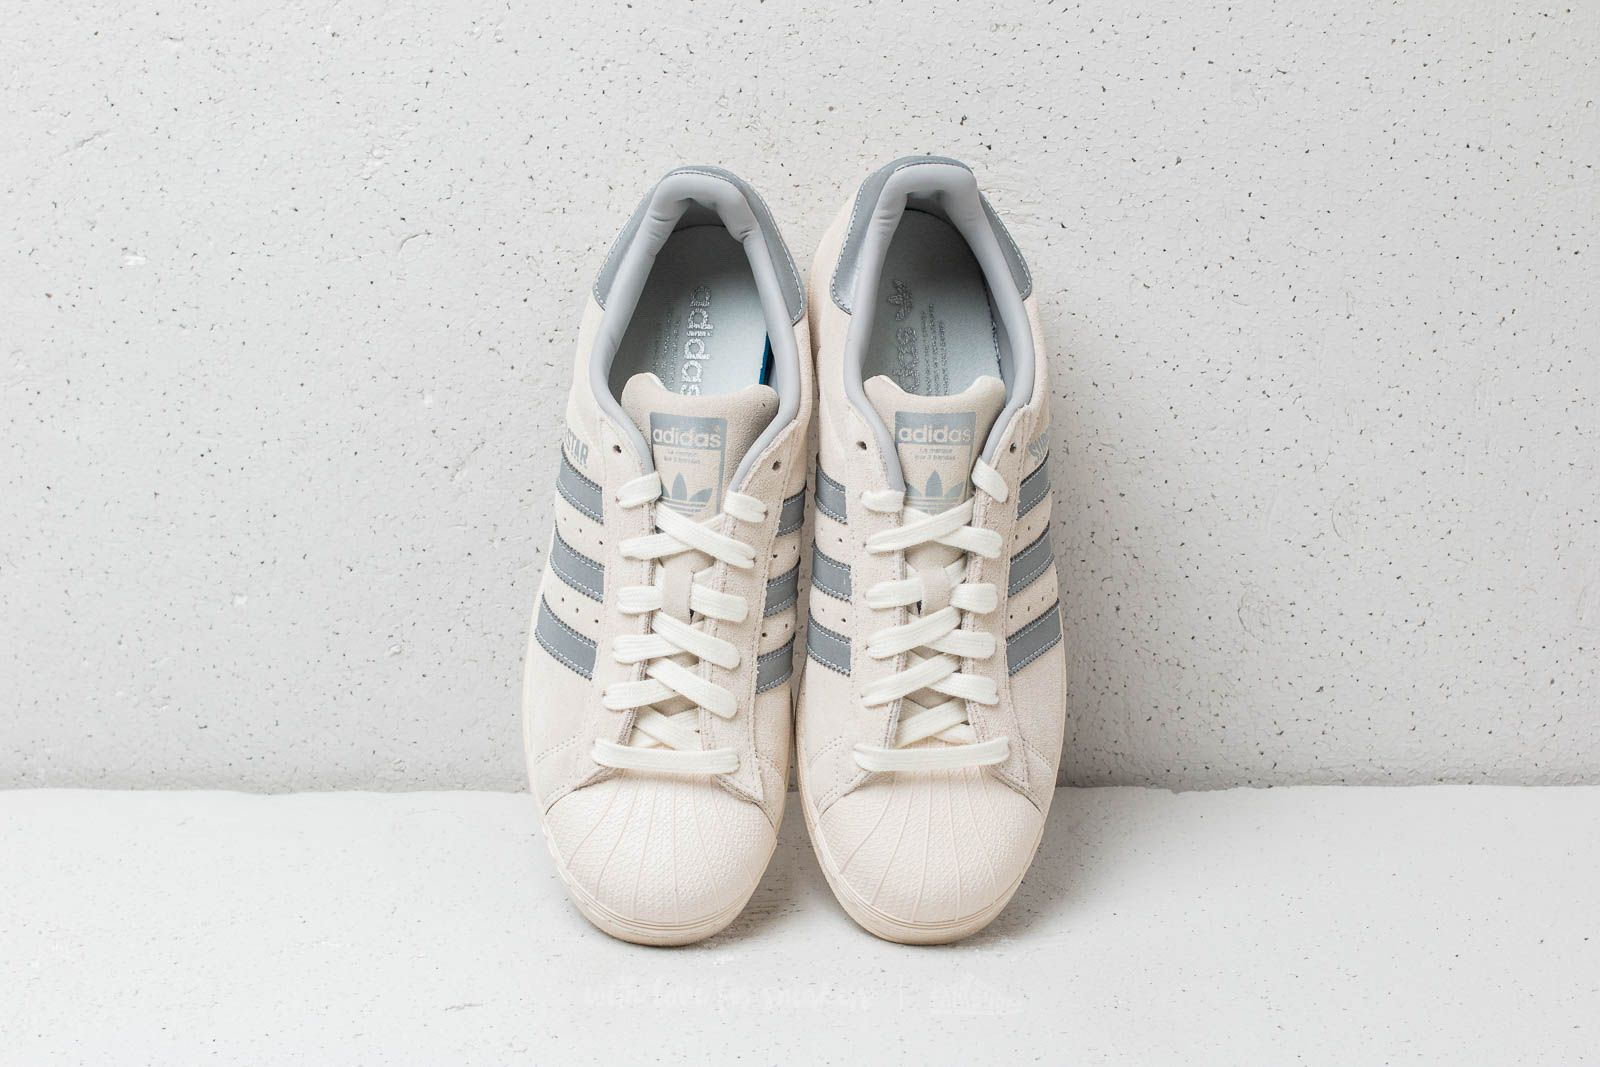 adidas Superstar Off White  Supplier Colour  Off White za skvělou cenu 1  690 Kč 85445965bee